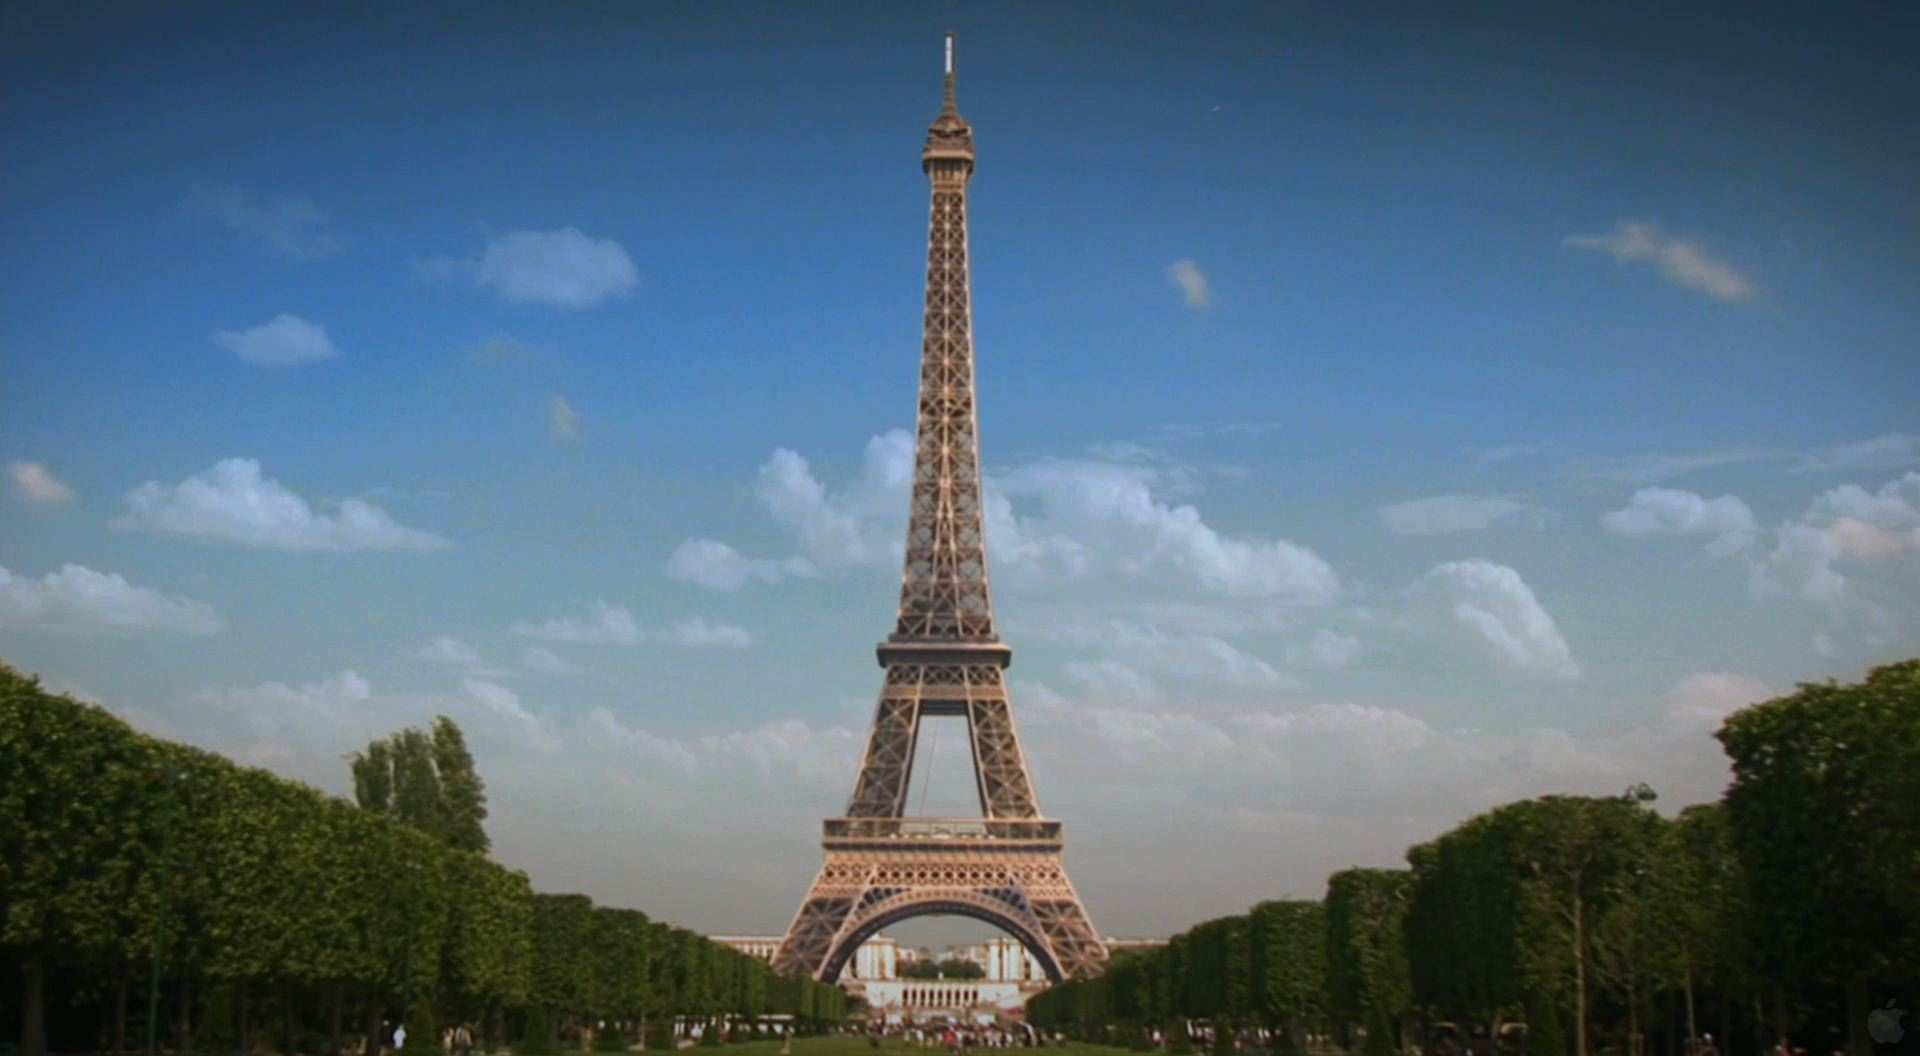 Eiffel tower computer wallpaper wallpapersafari - Paris eiffel tower desktop wallpaper ...